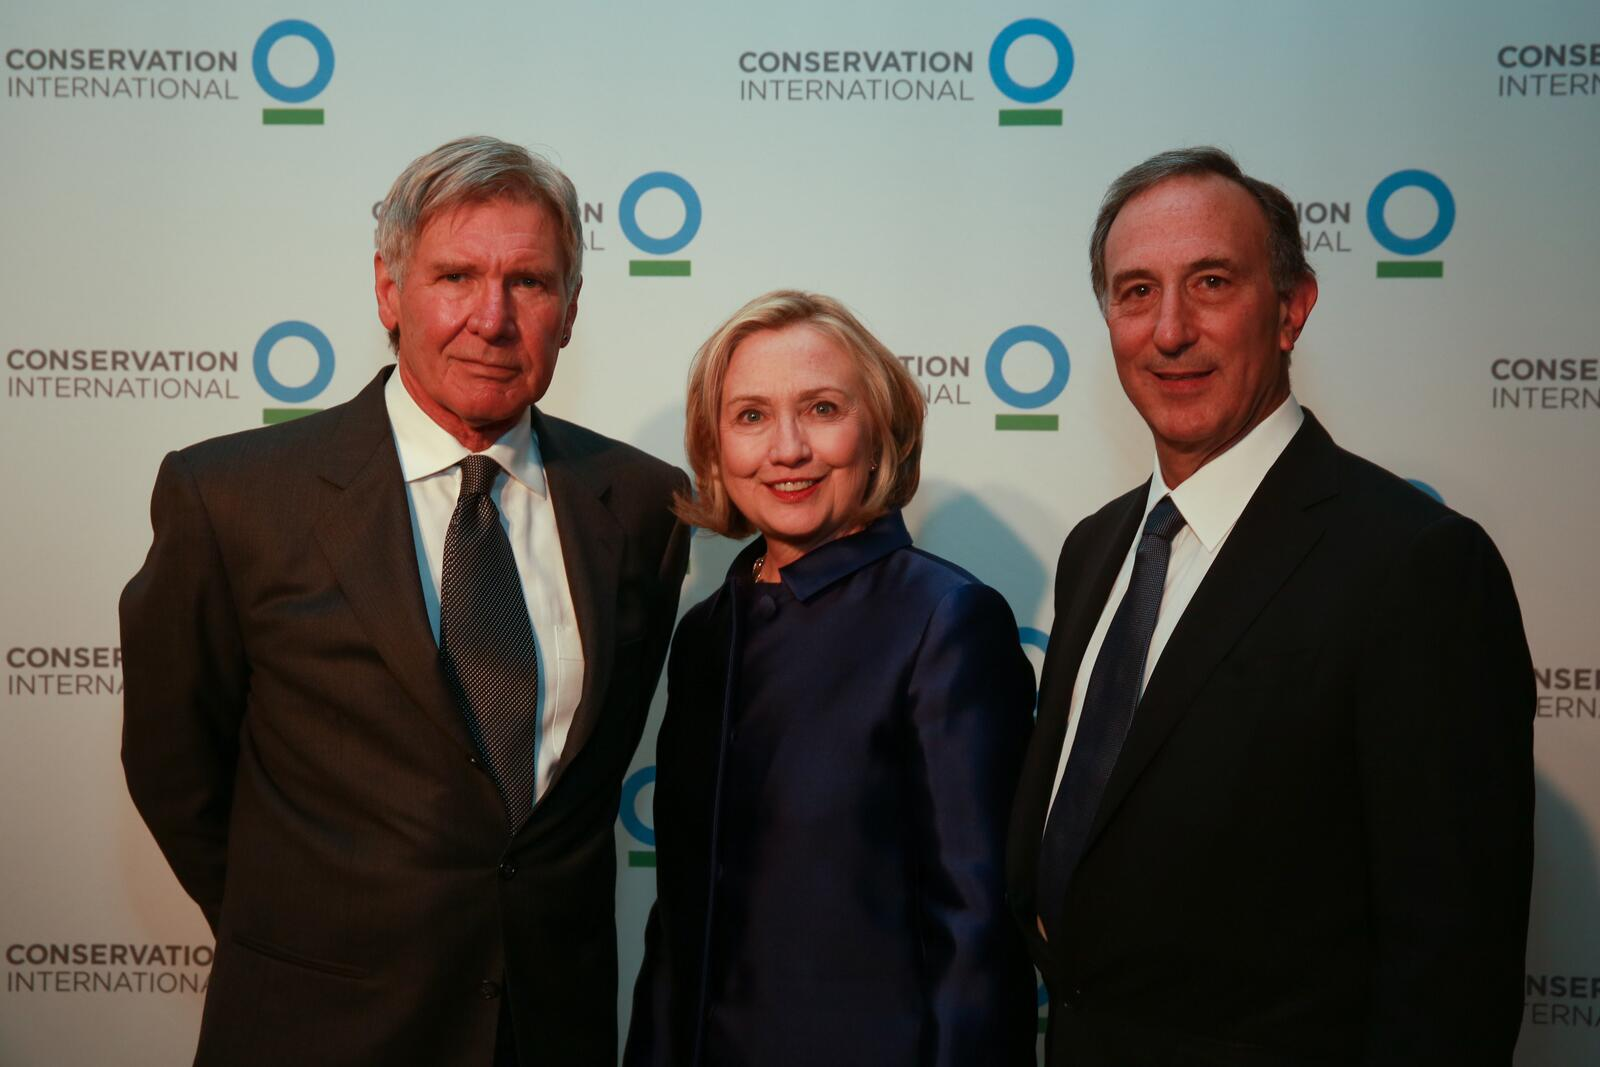 Twitter / ConservationOrg: Hey, look -- 3 leaders supporting ...